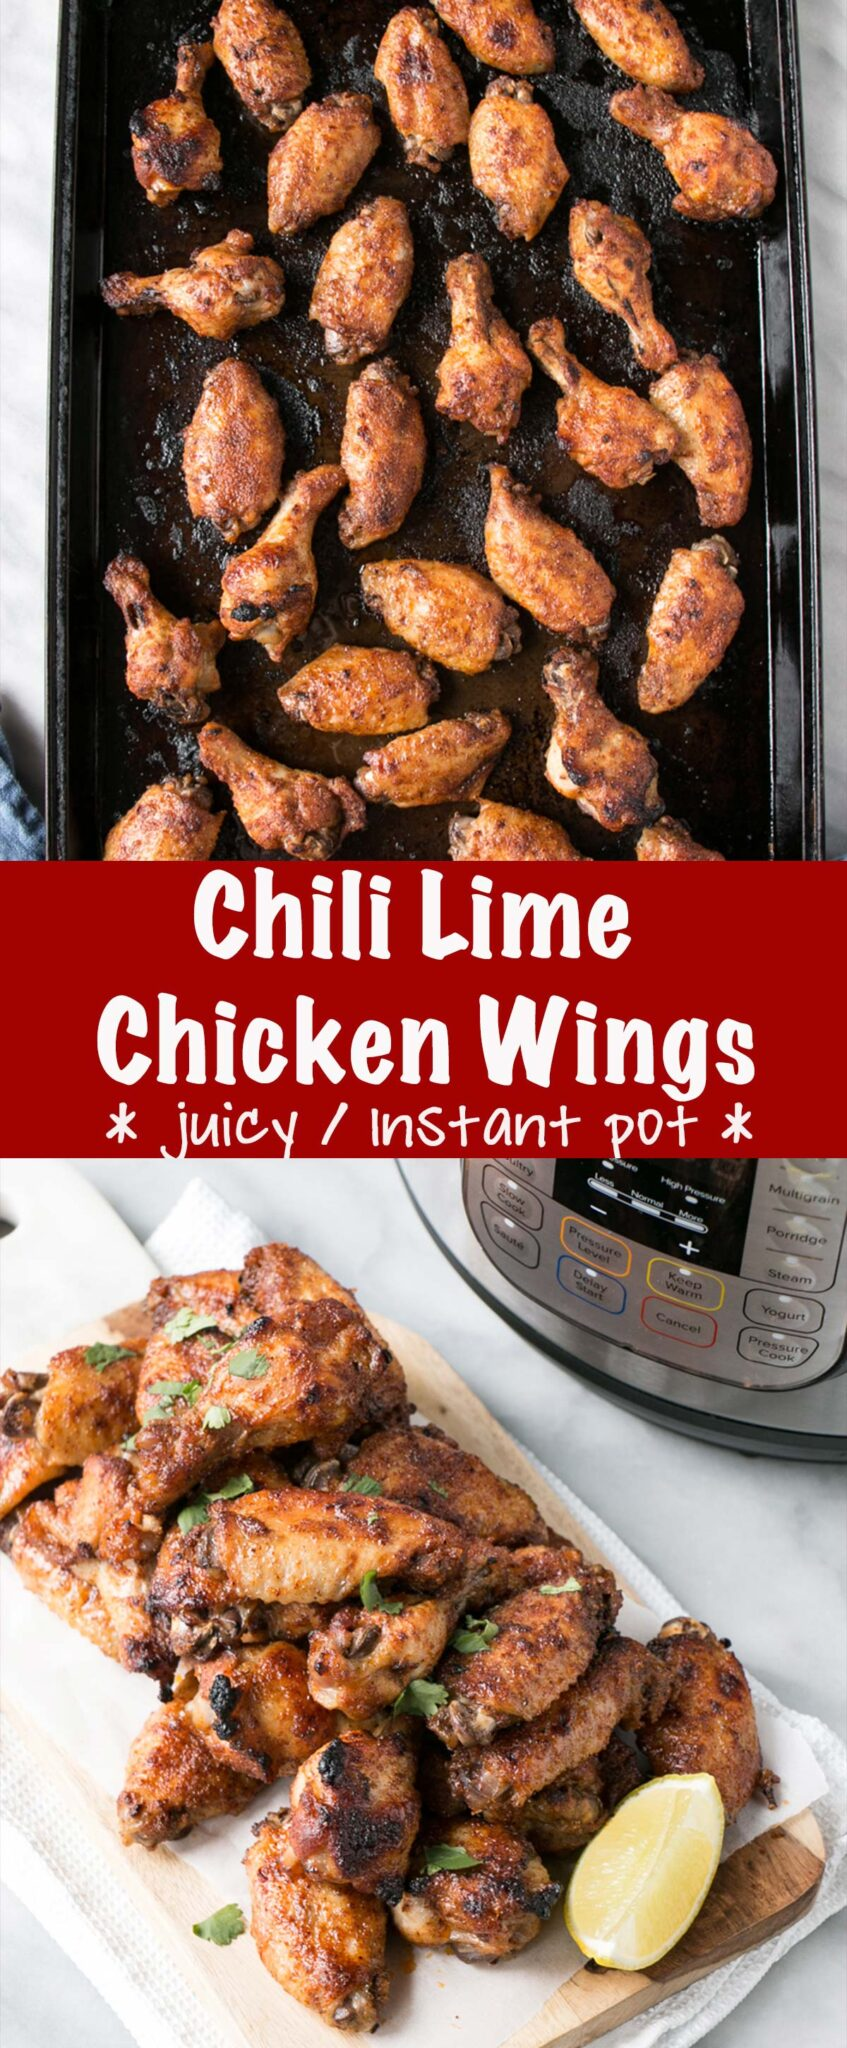 Chilli Lime Chicken Wings Pin